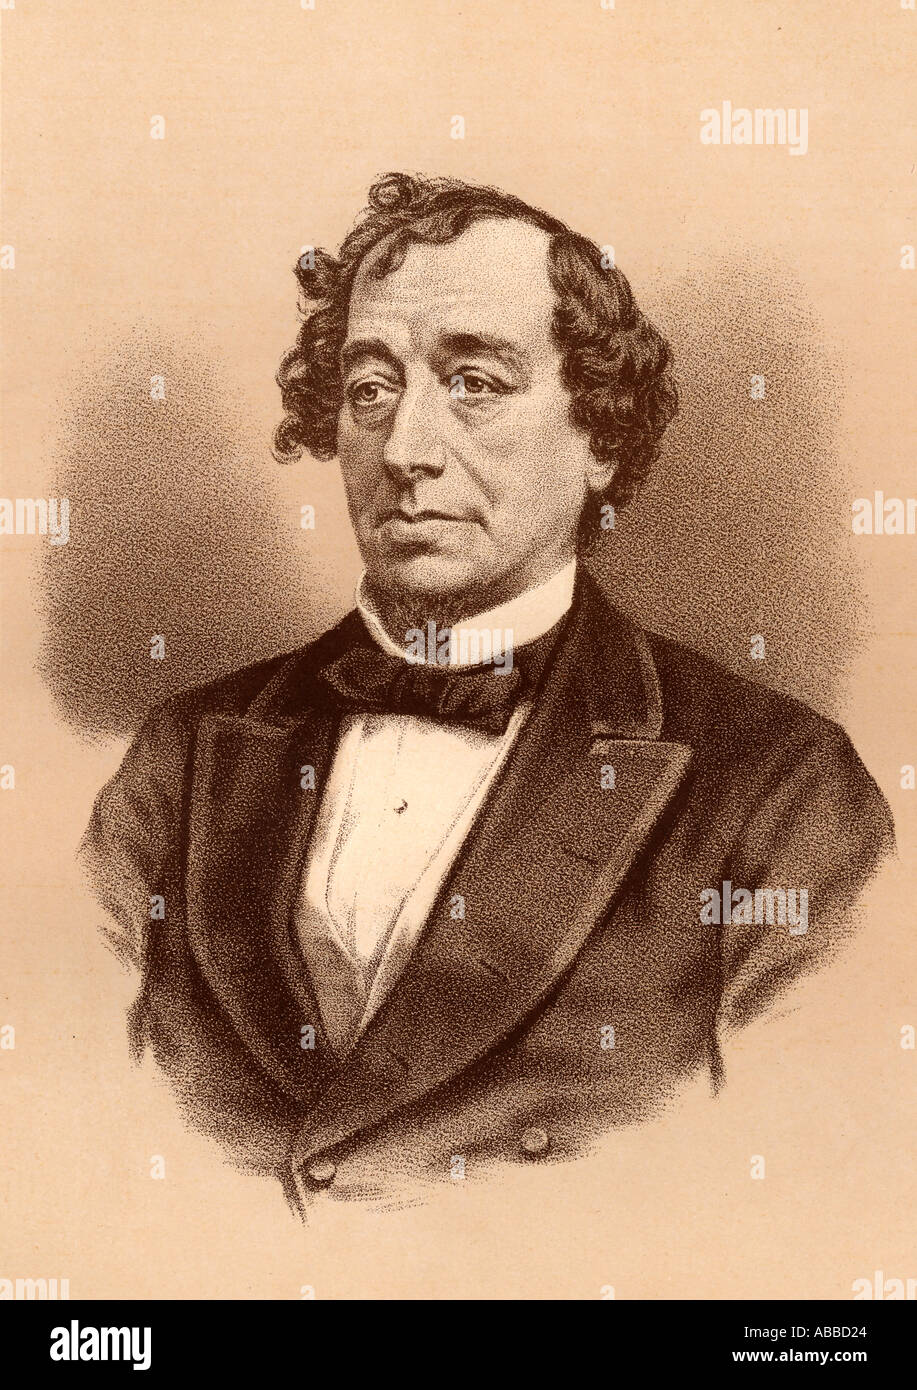 Benjamin Disraeli, 1st Earl of Beaconsfield,1804 –1881. British statesman and two times Prime Minister of the United Kingdom. Stock Photo